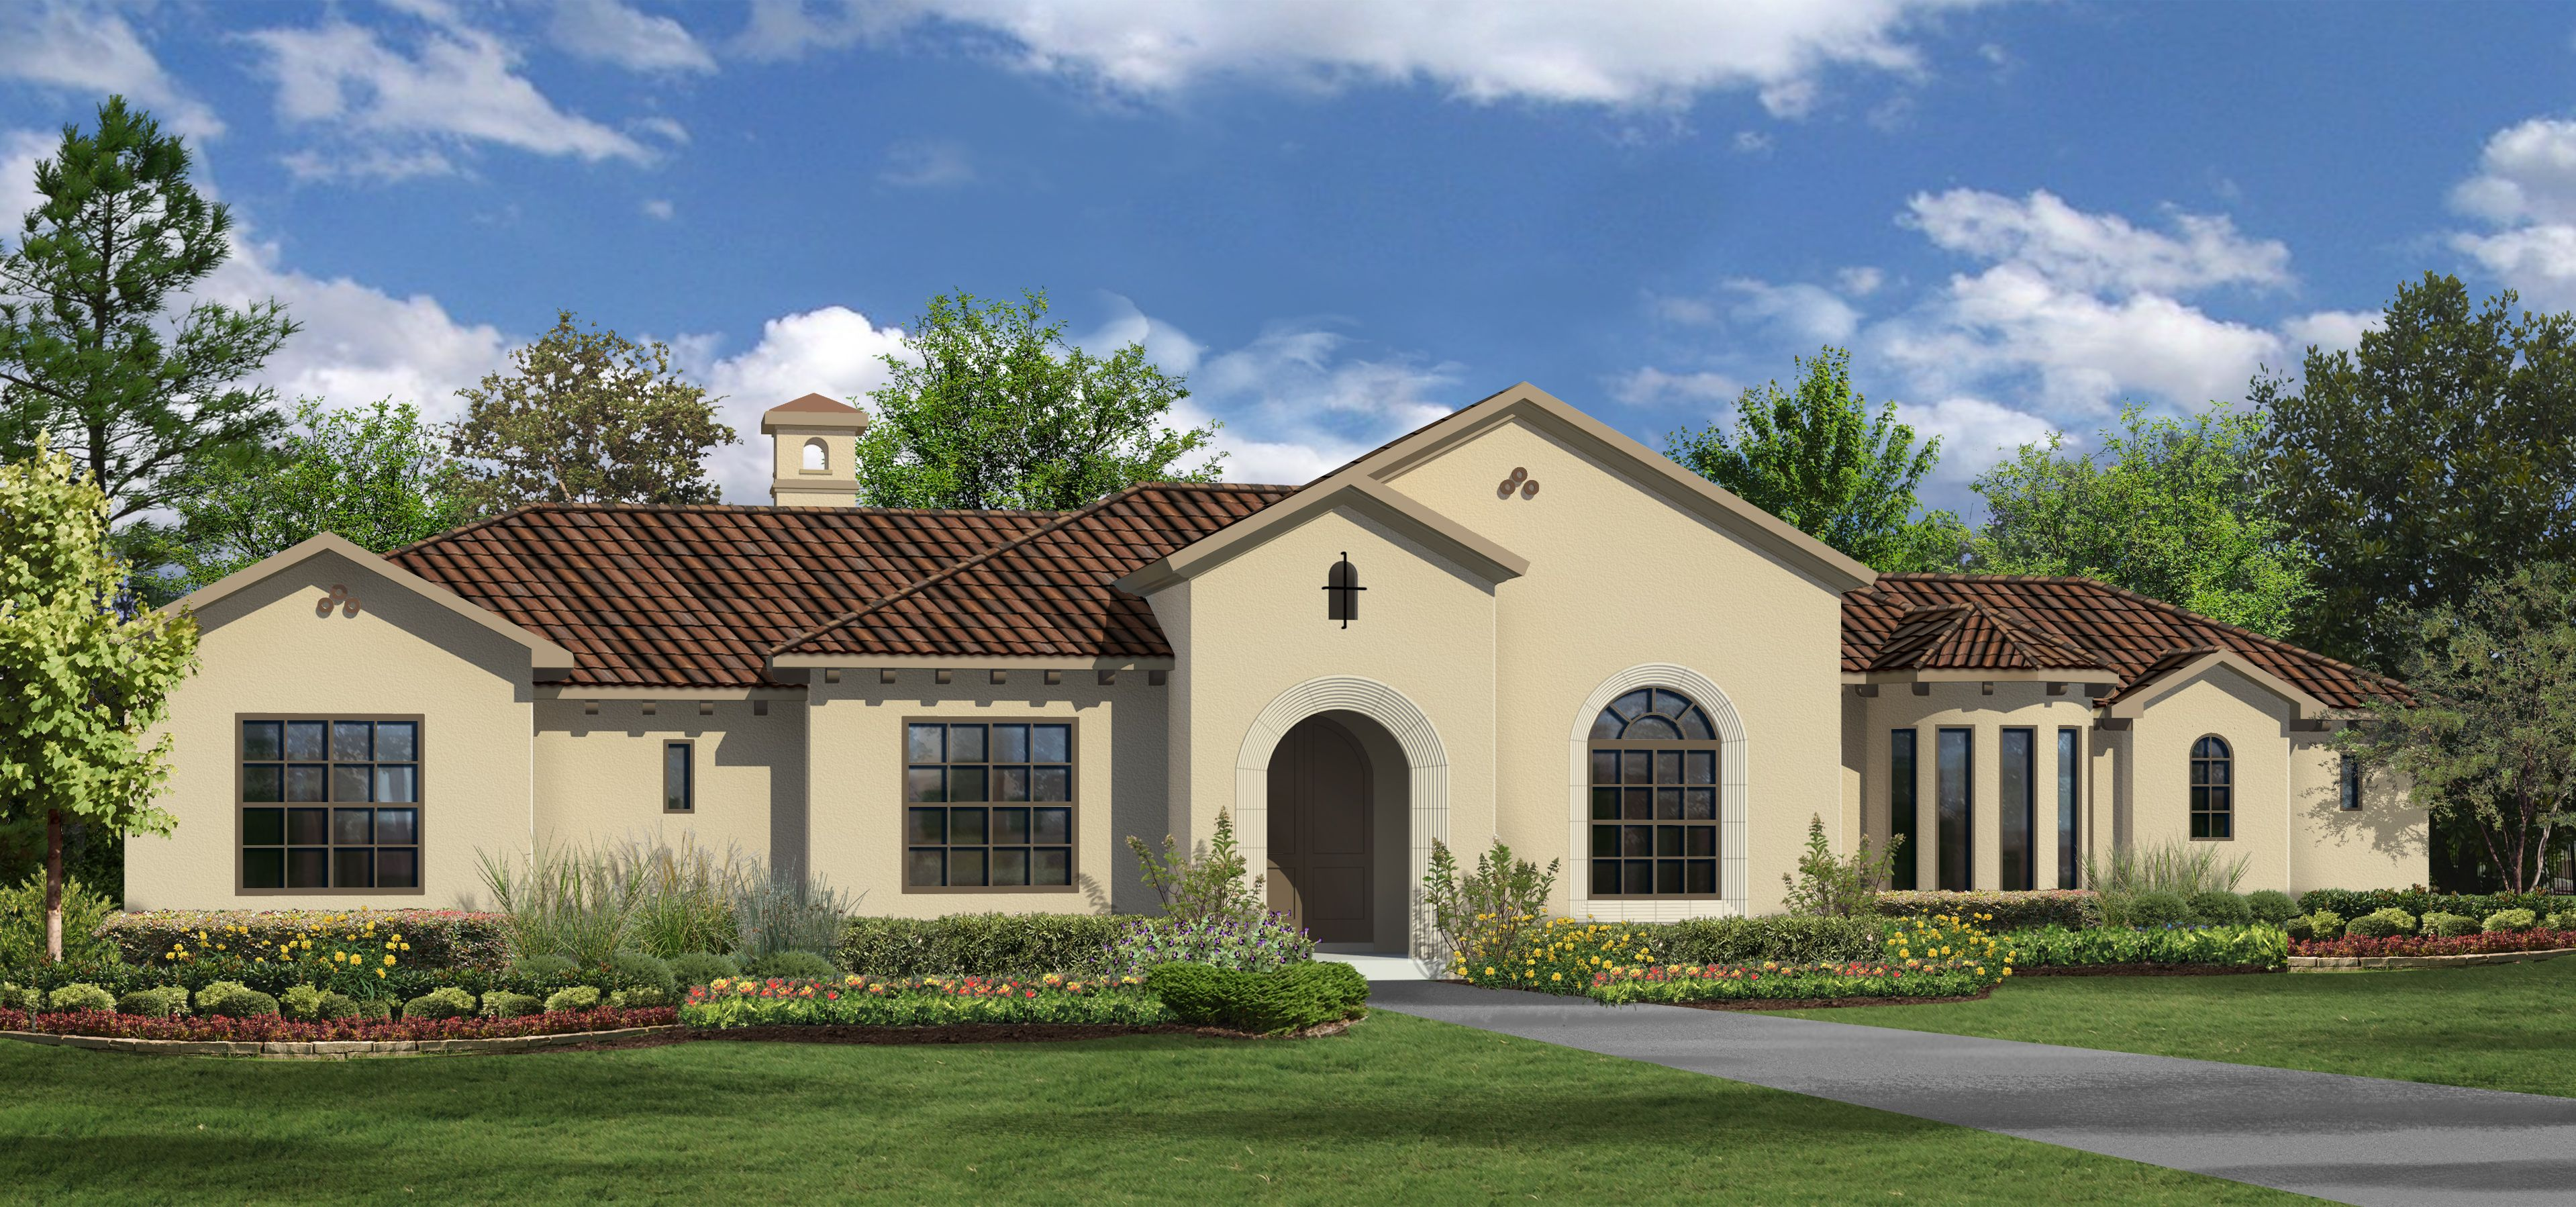 2 606 sq ft house plan 4 bed 3 bath 1 story the for Wakefield house